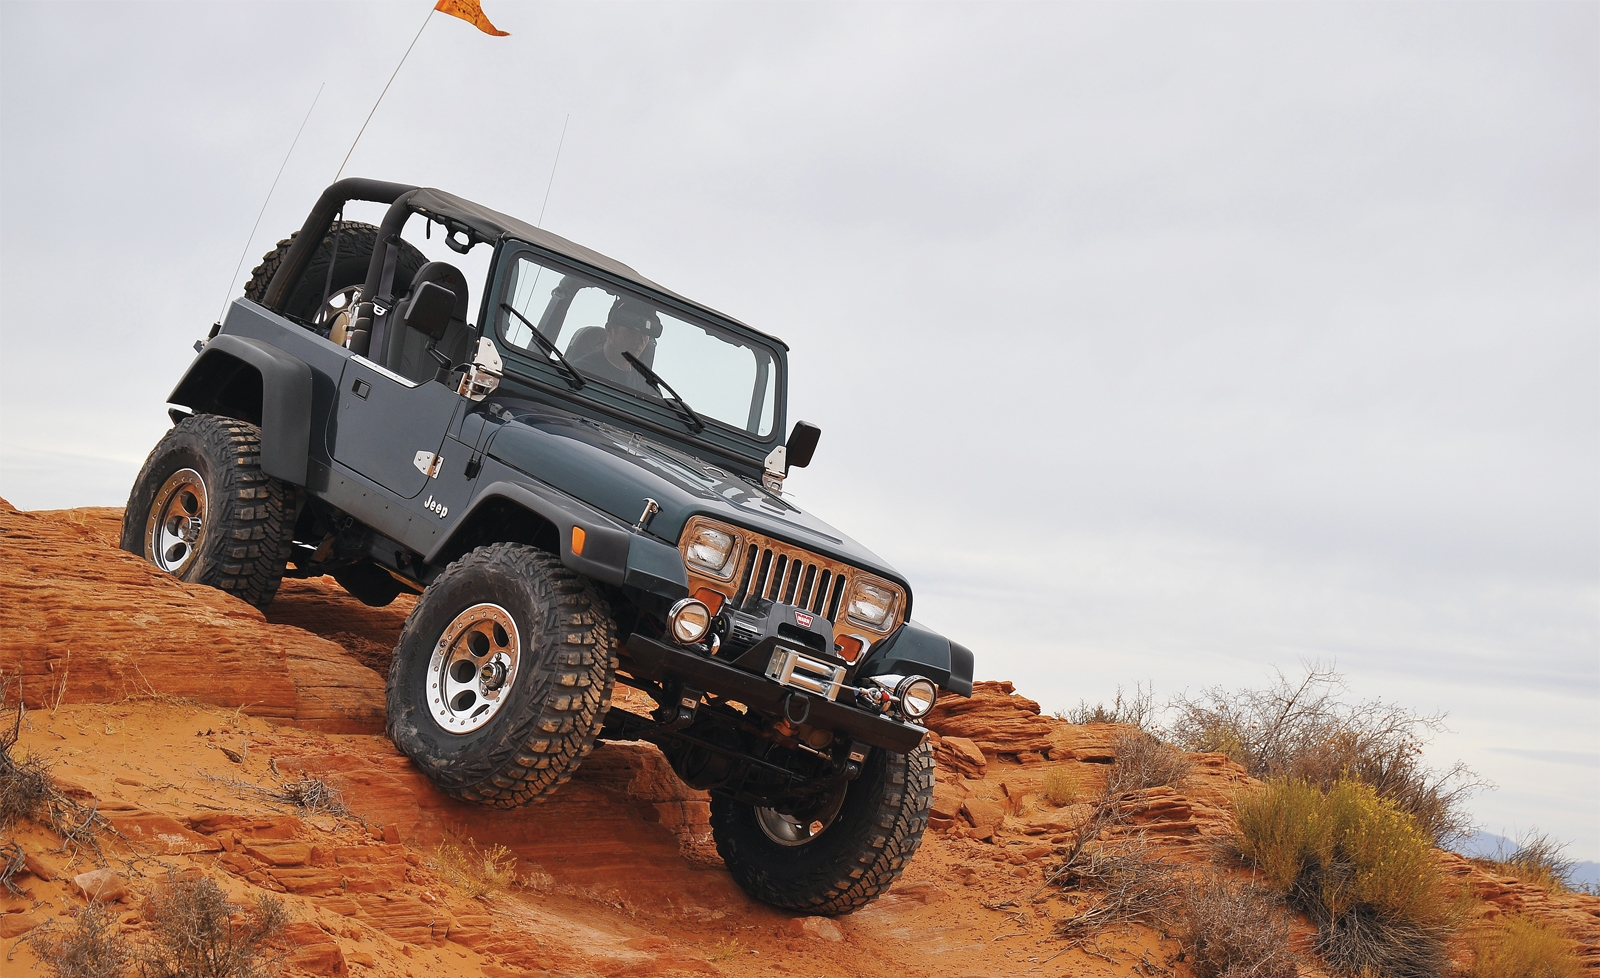 Jeep Wallpapers Backgrounds jeep wallpaper background 1600x978